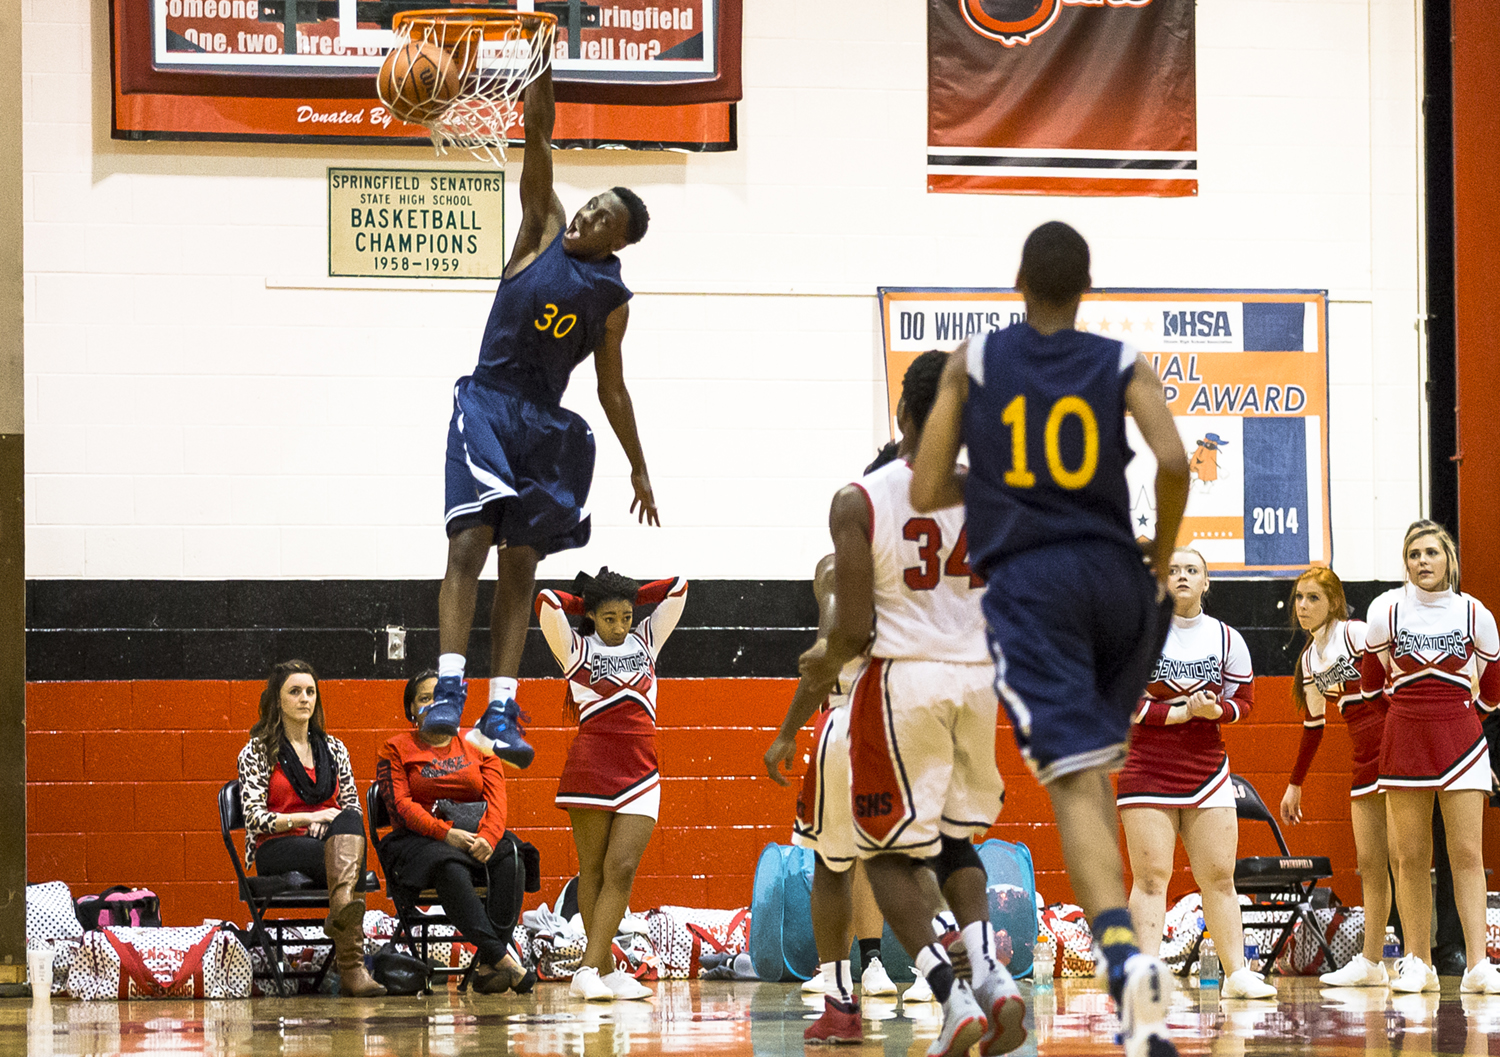 Southeast's D'Angelo Hughes (30) puts down a dunk against Springfield in the second half at Springfield High School, Tuesday, Dec. 8, 2015, in Springfield, Ill. Justin L. Fowler/The State Journal-Register